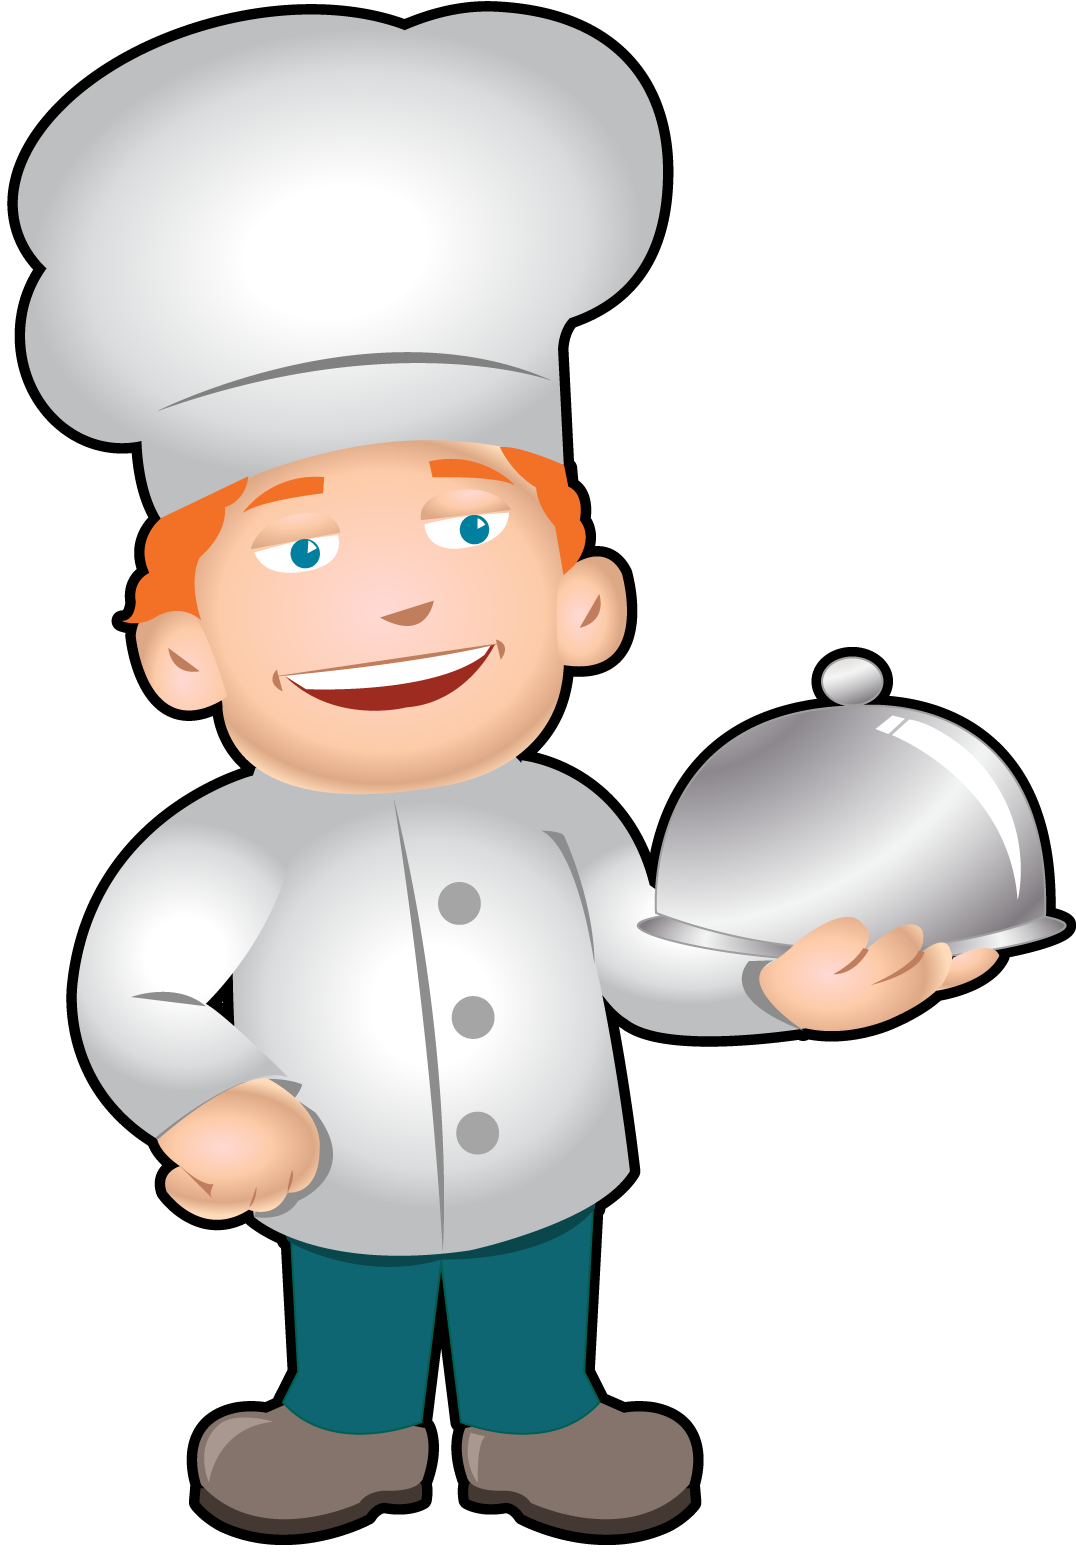 Art chef clipart picture free stock Free Restaurant Chef Cliparts, Download Free Clip Art, Free Clip Art ... picture free stock